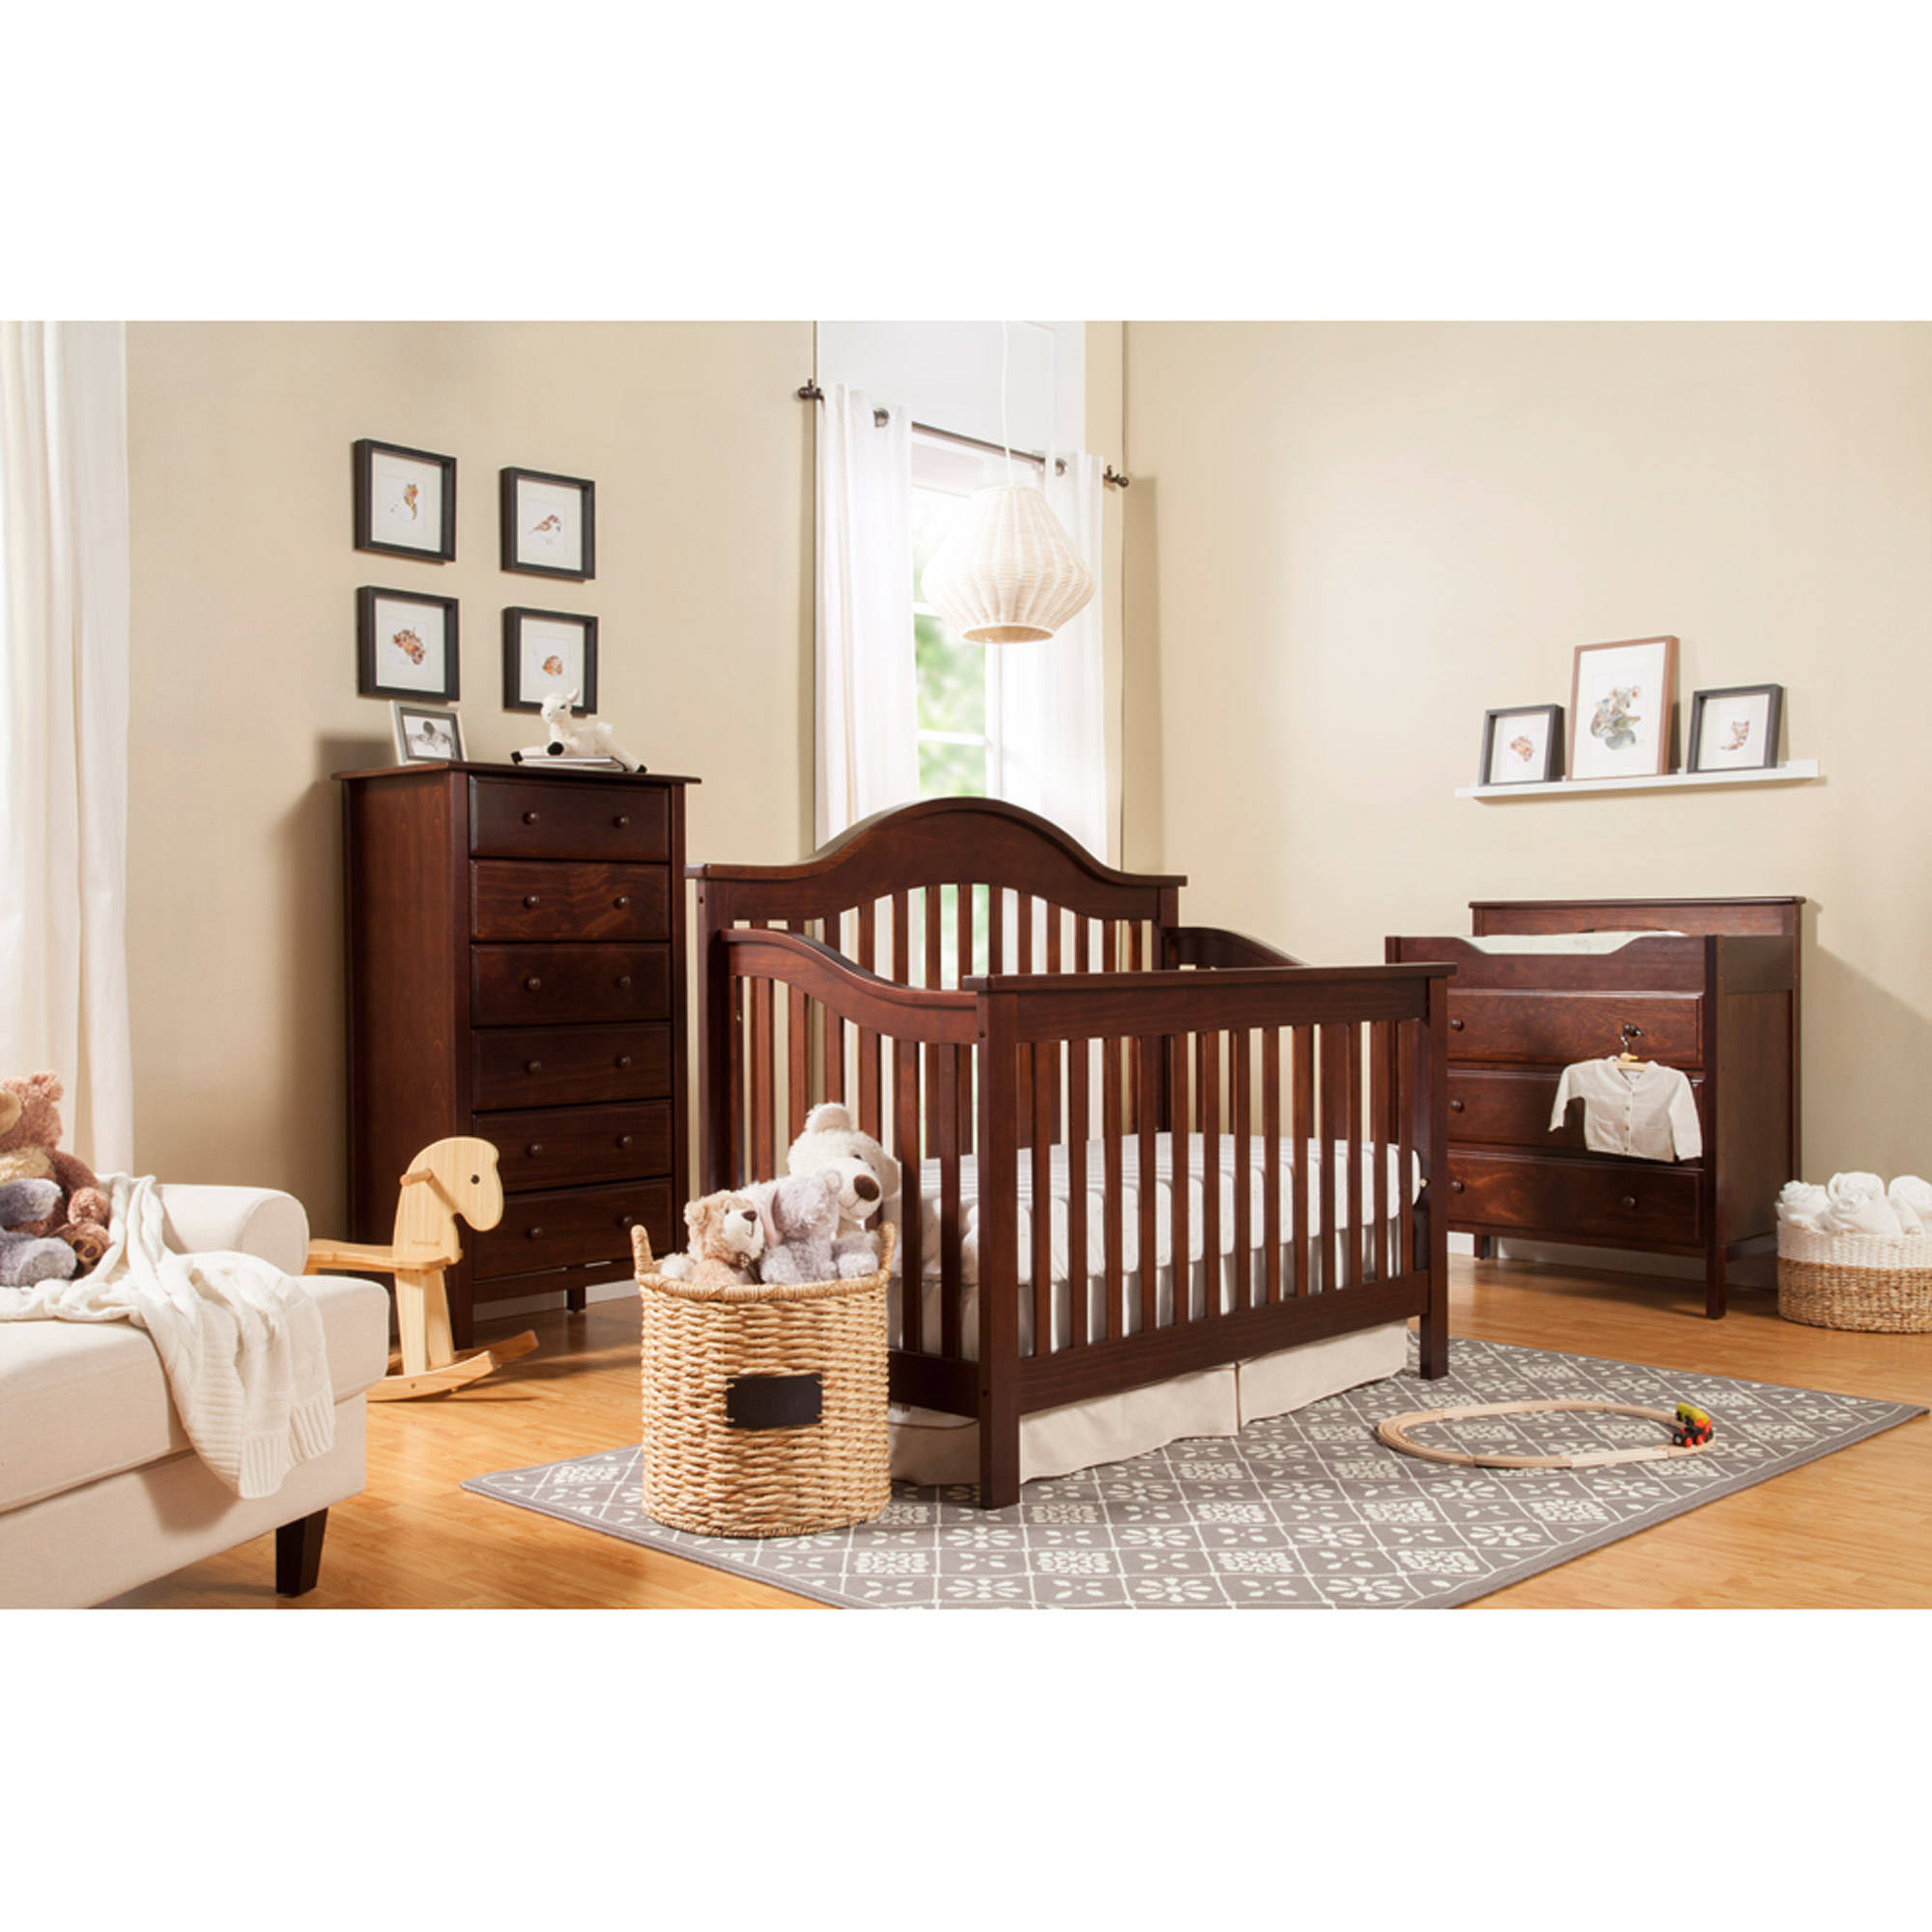 DaVinci Jayden 4-in-1 Convertible Crib with Toddler Bed Conversion Kit, (Choose Your Finish)